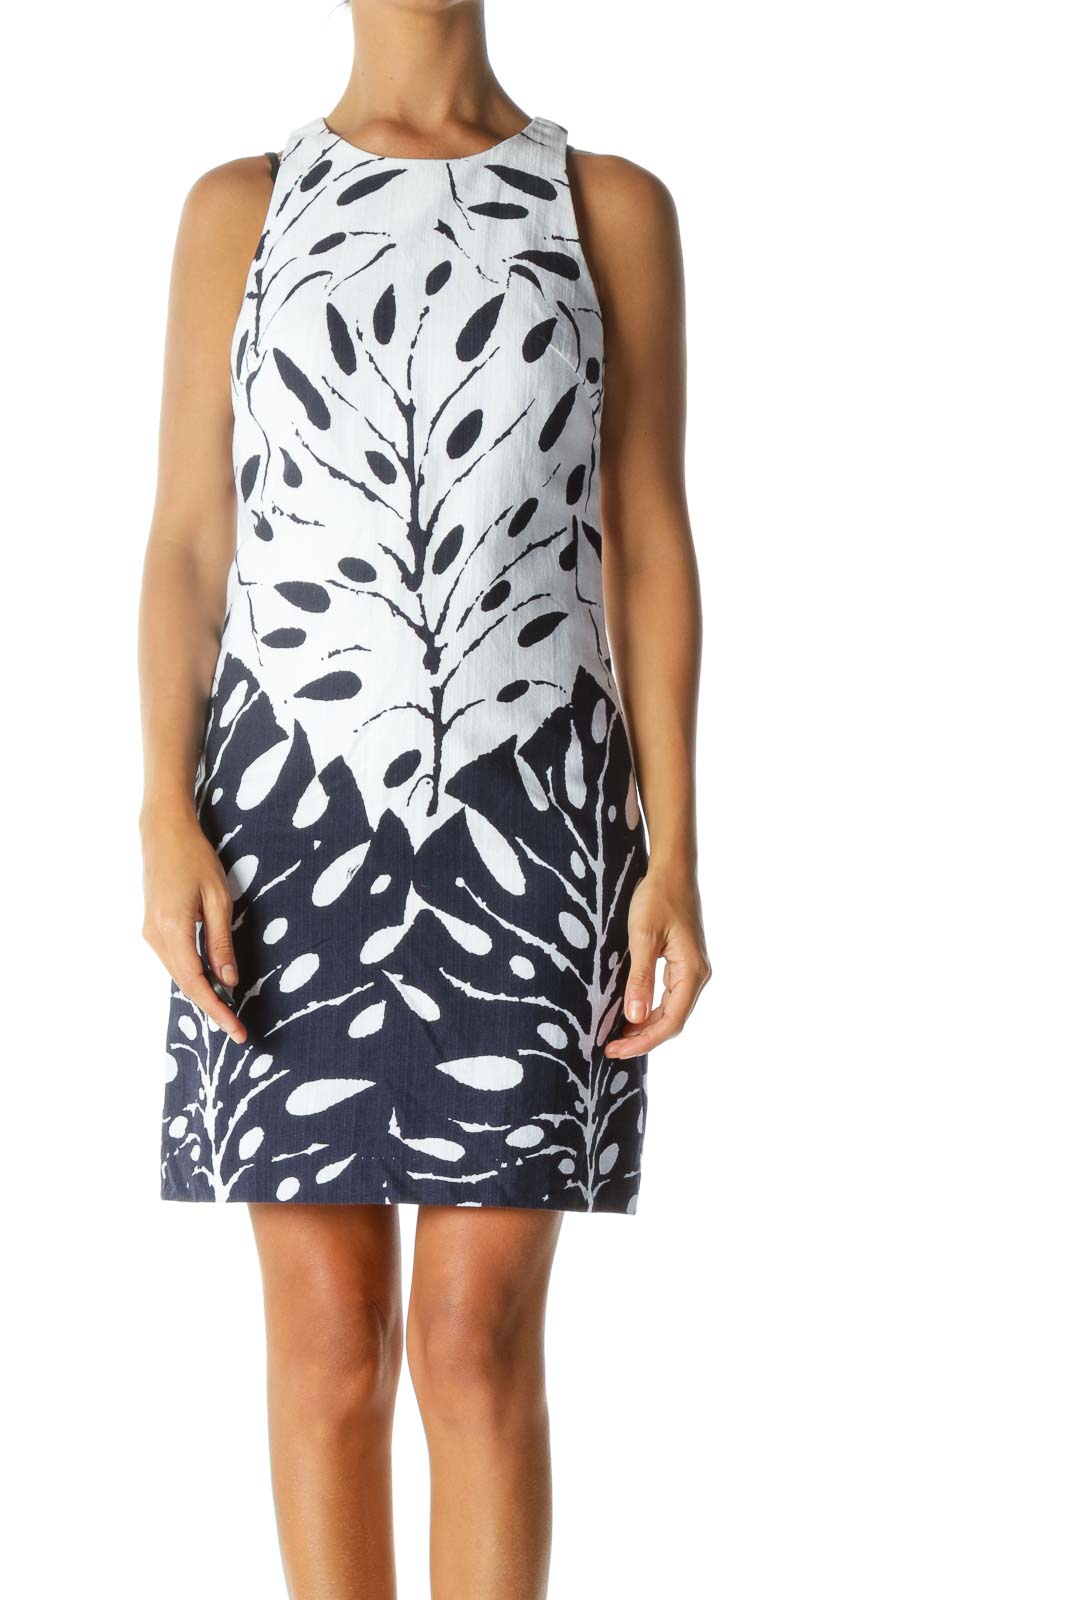 Blue White Print Textured Round Neck Day Dress